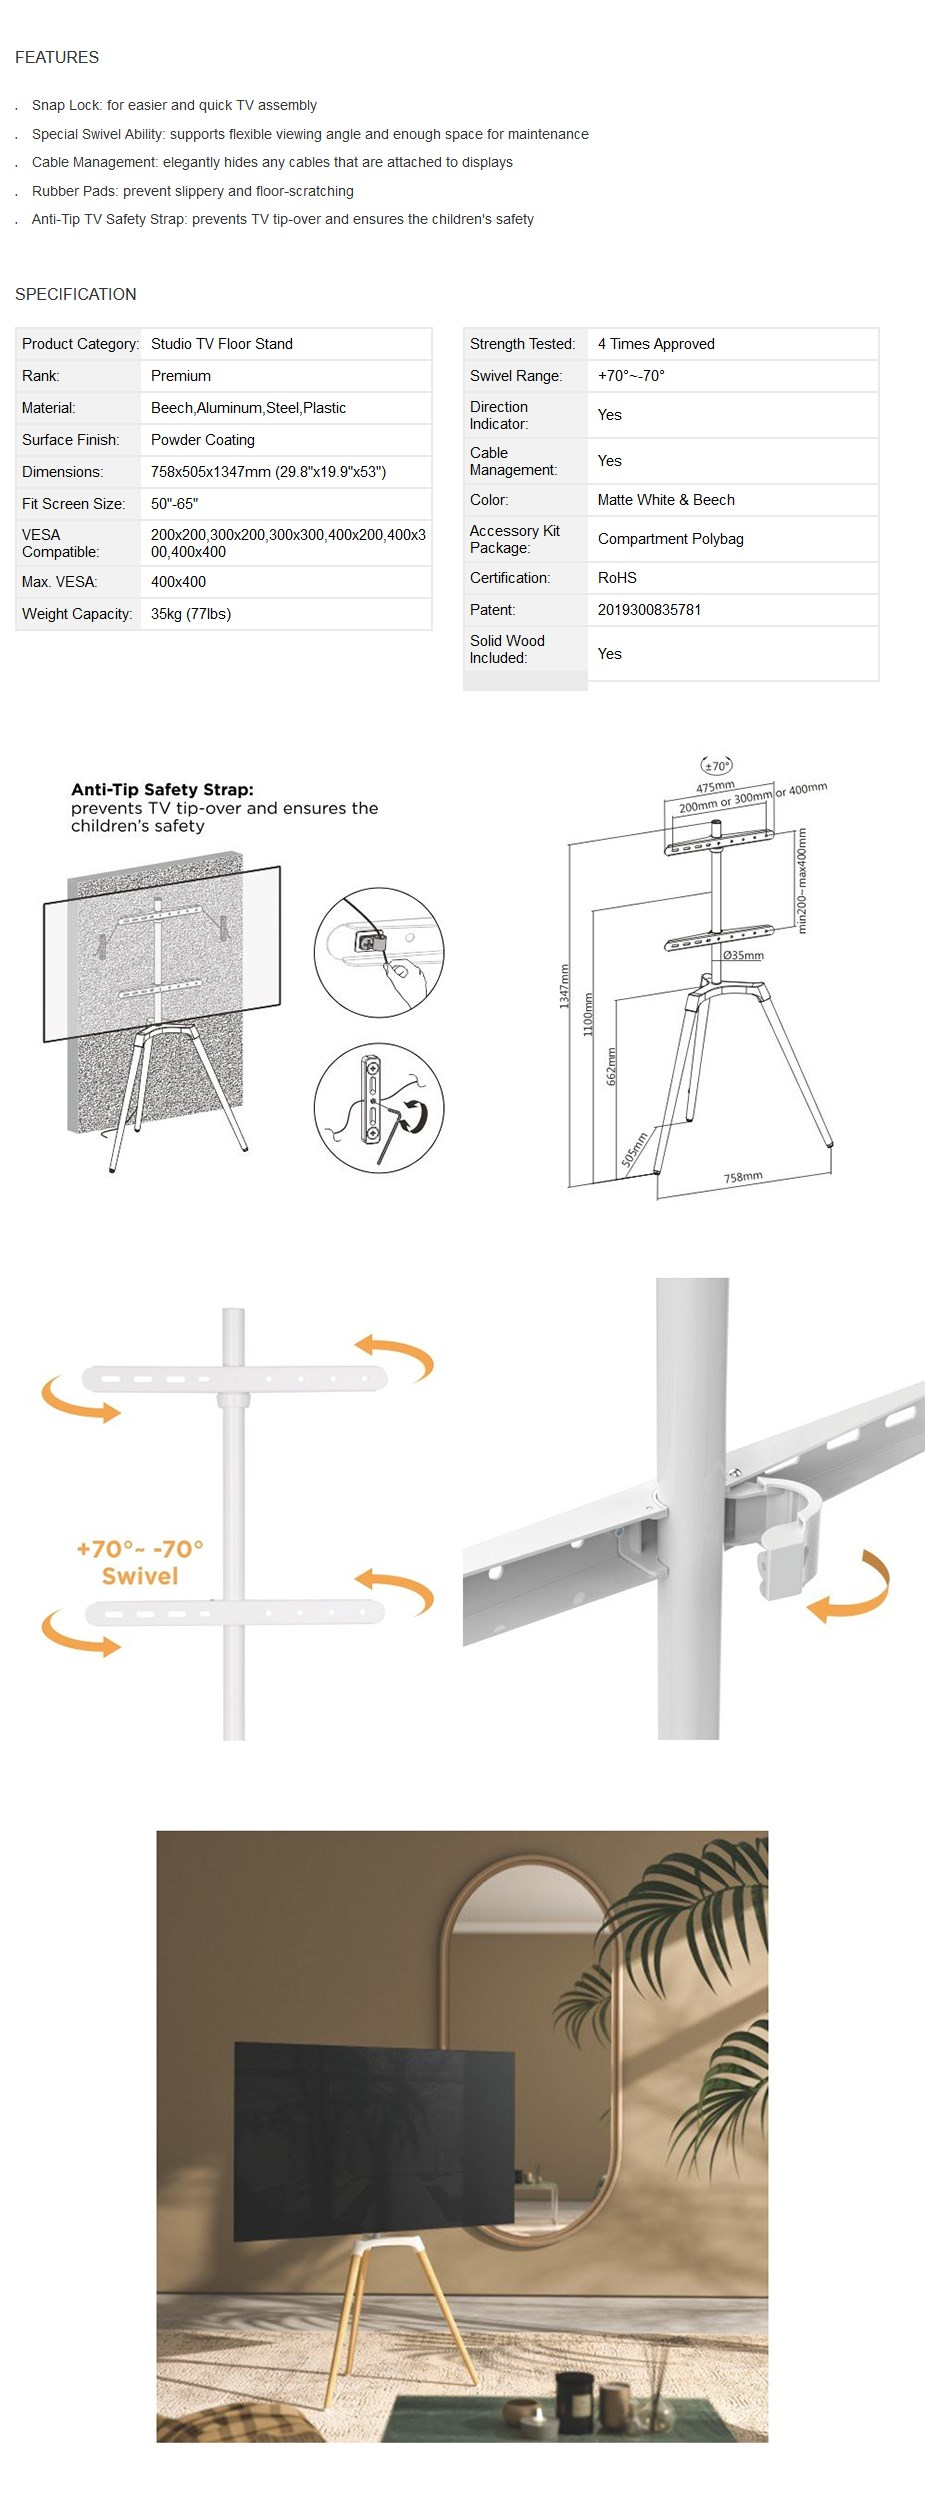 "Brateck Easel Studio TV Floor Tripod Stand 50"" - 65"" - Matte White & Beech - Overview 1"